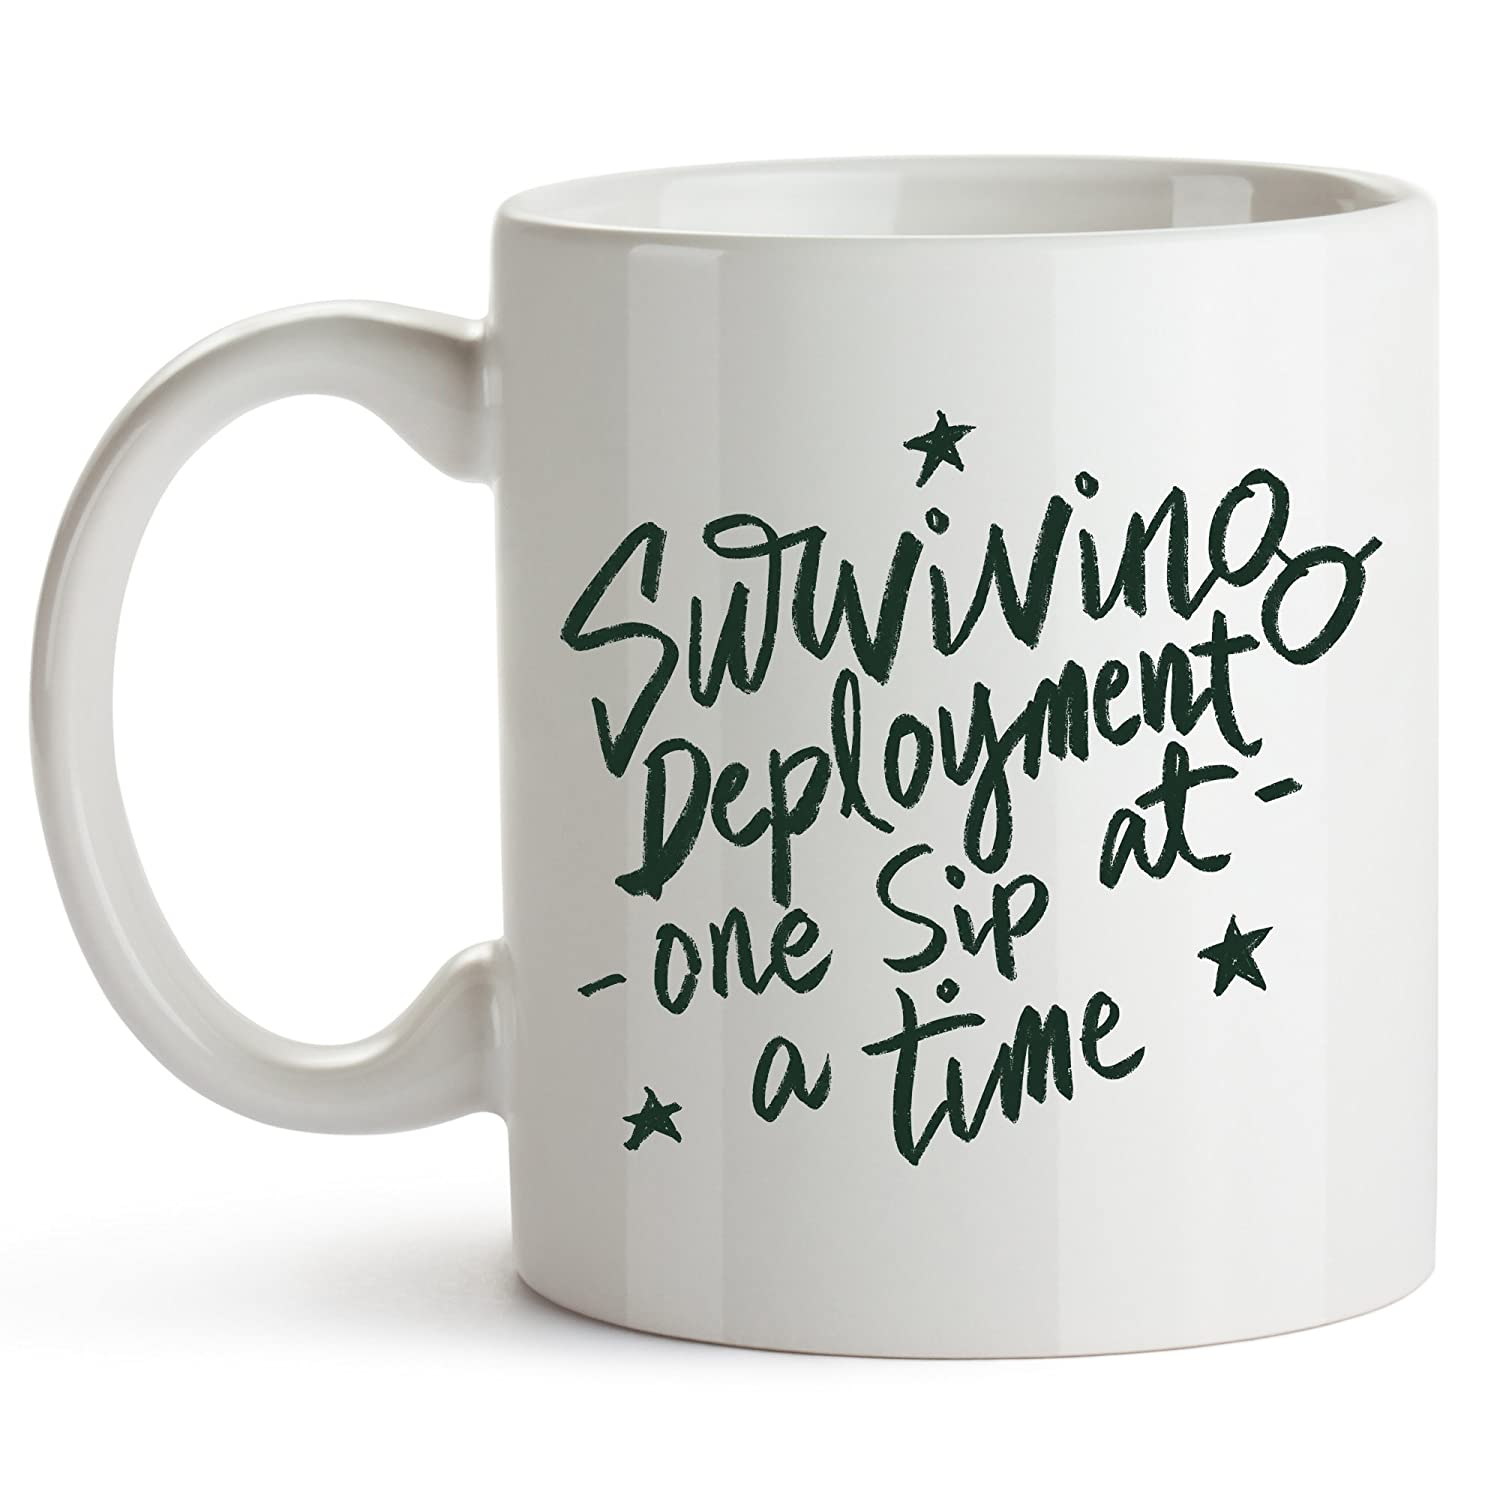 Surviving導入、1つSip At A Time – Funny Coffee Mug – 導入サバイバルCup、Surviving導入、1つSip At A Time、軍事妻、導入   B073SR9265